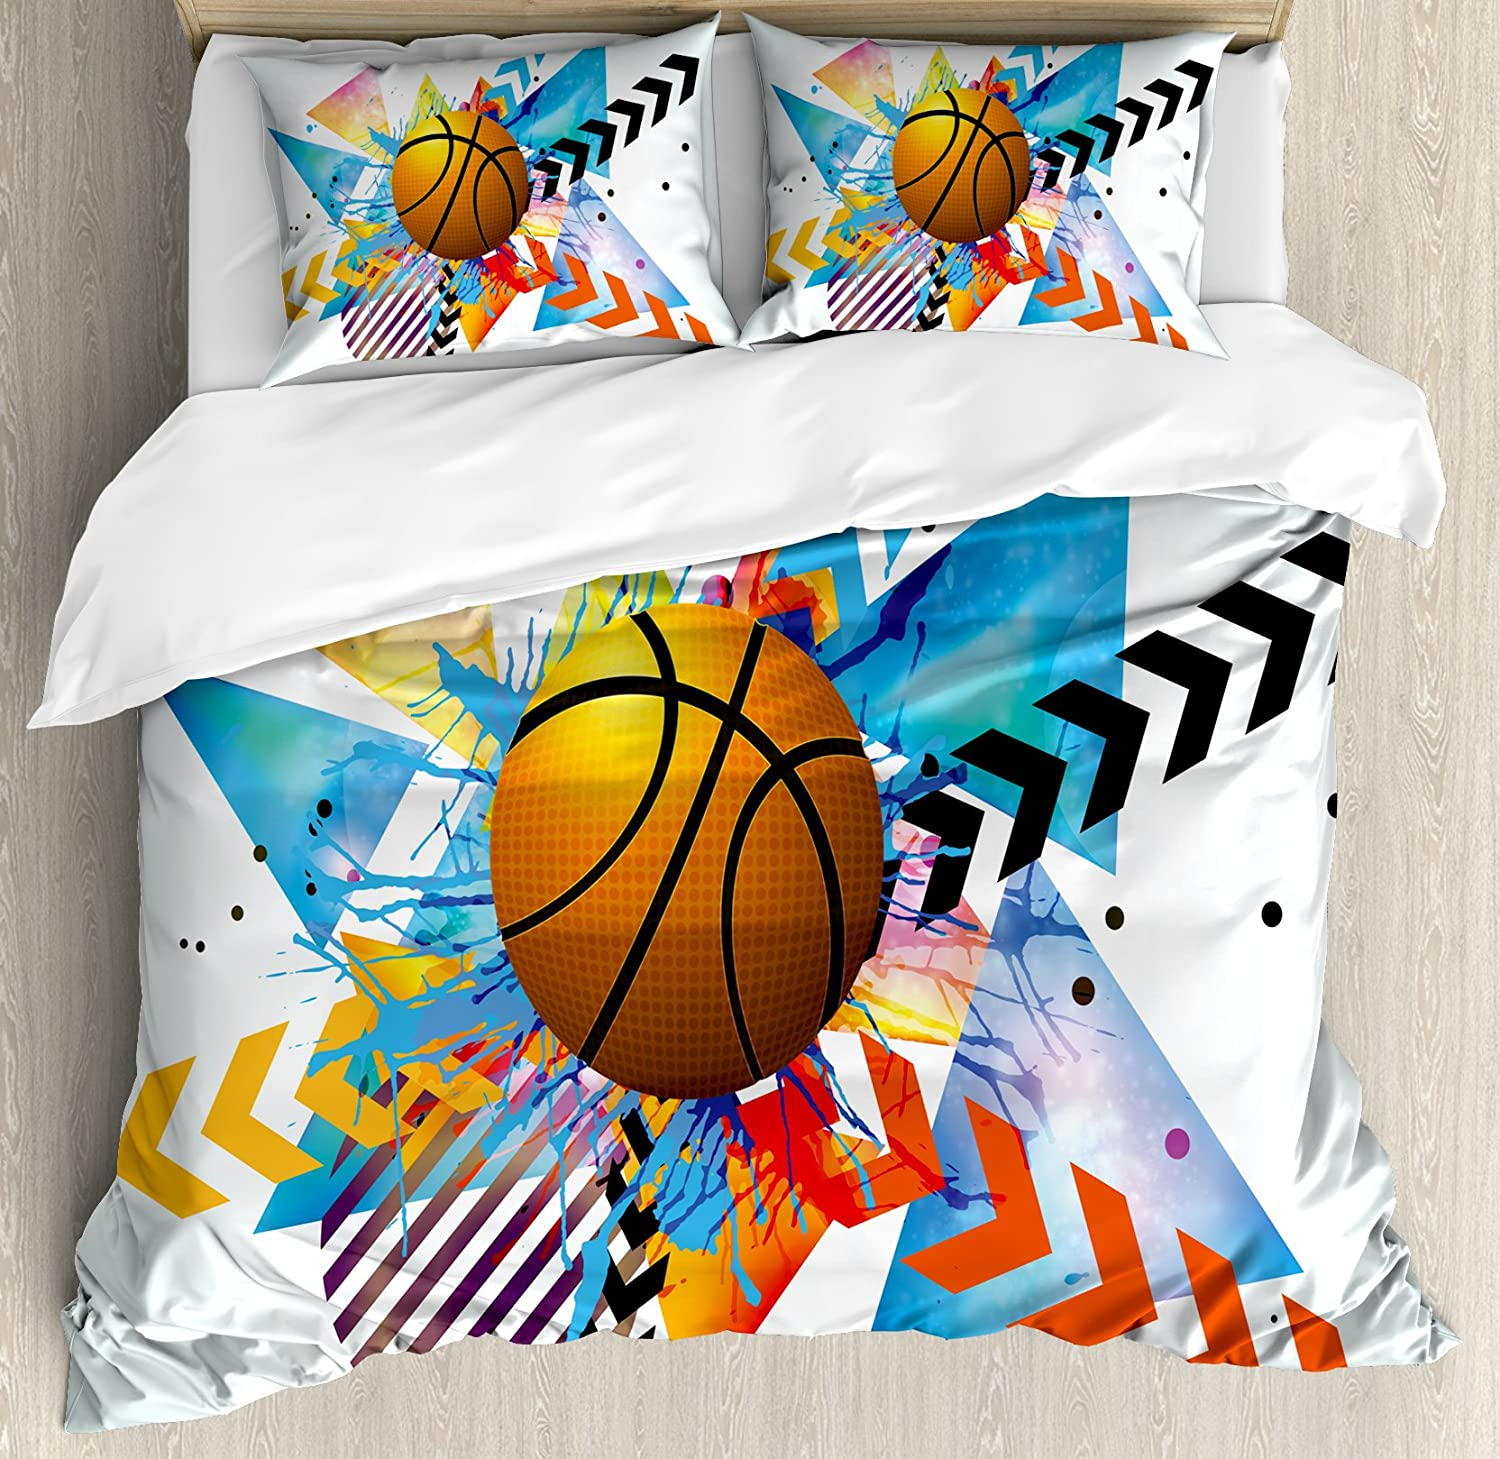 Ambesonne Teen Room Duvet Cover Set, Basketball in Front of Zigzag Circular Geometric Minimalist Forms Graphic Print, Decorative 3 Piece Bedding Set with 2 Pillow Shams, Queen Size, Orange Blue